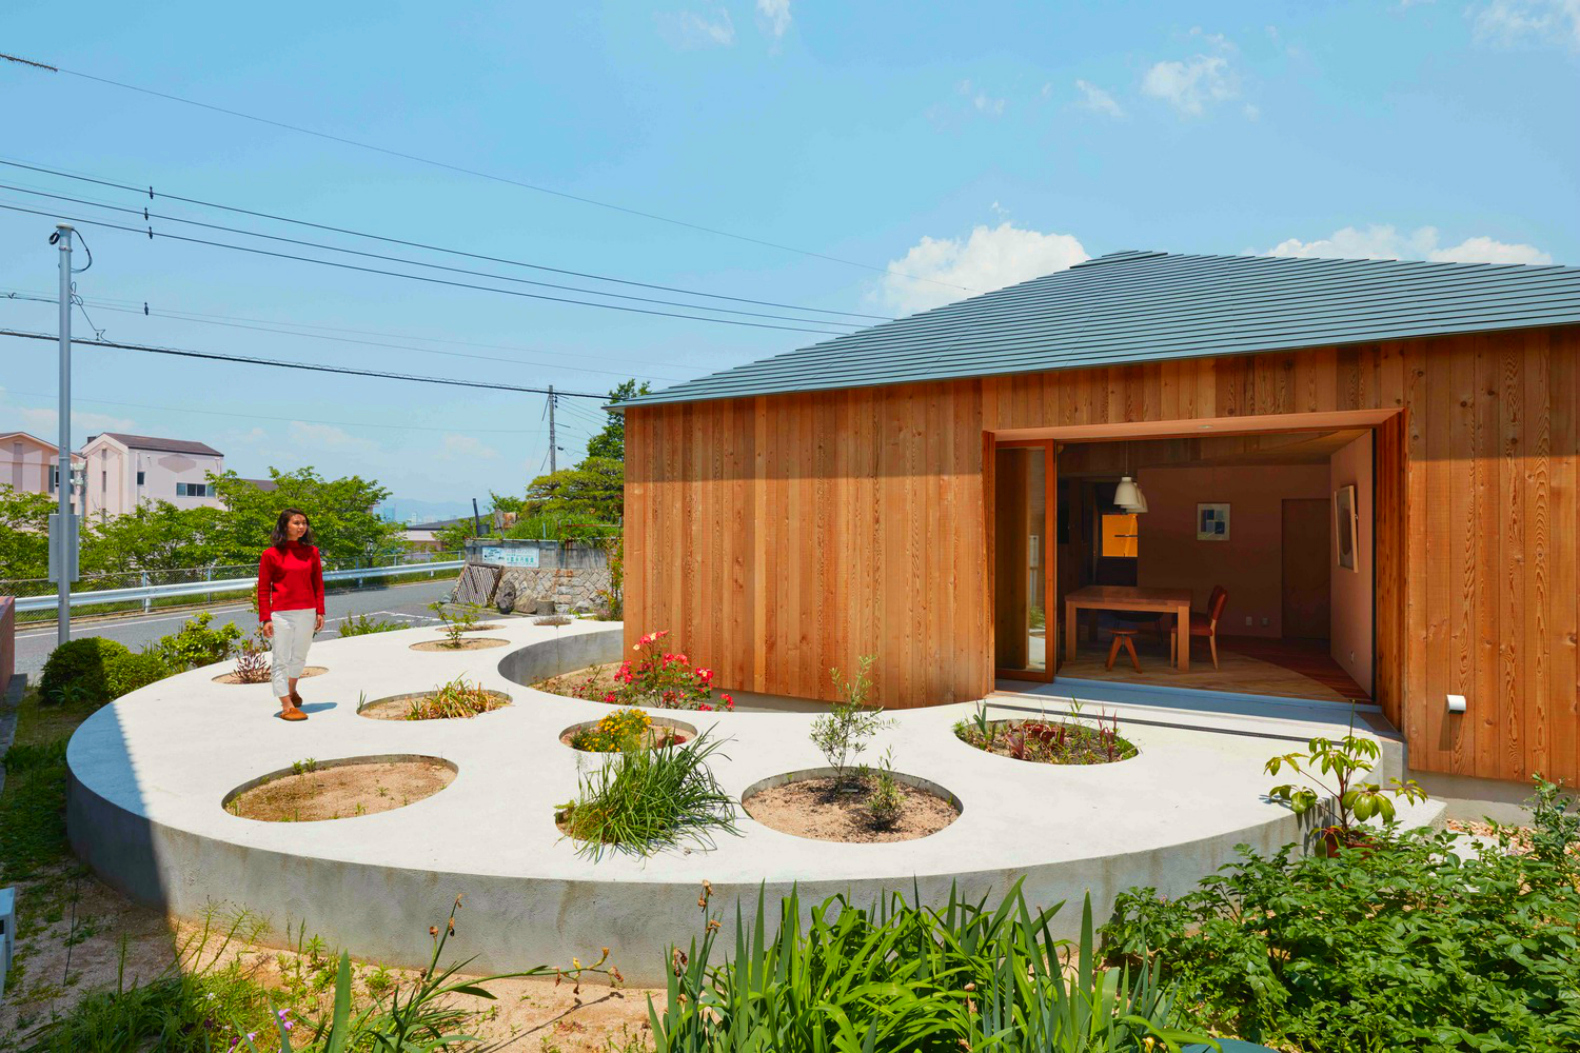 Circular garden walkway cuts straight through Japanese timber home